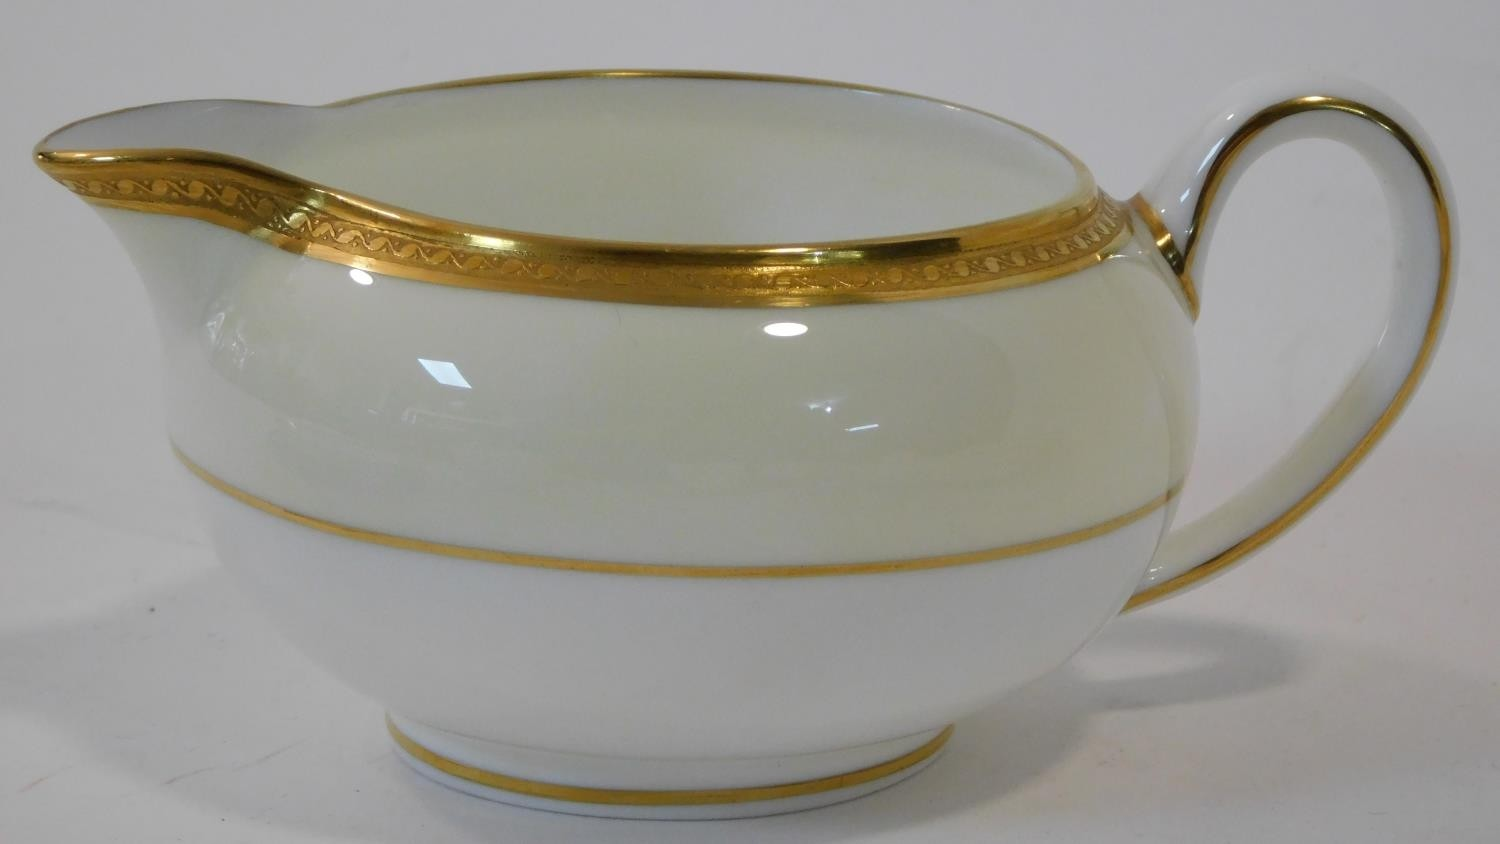 A six person part scrolling gilded design porcelain Wedgwood coffee set, pattern number W4249. - Image 12 of 12